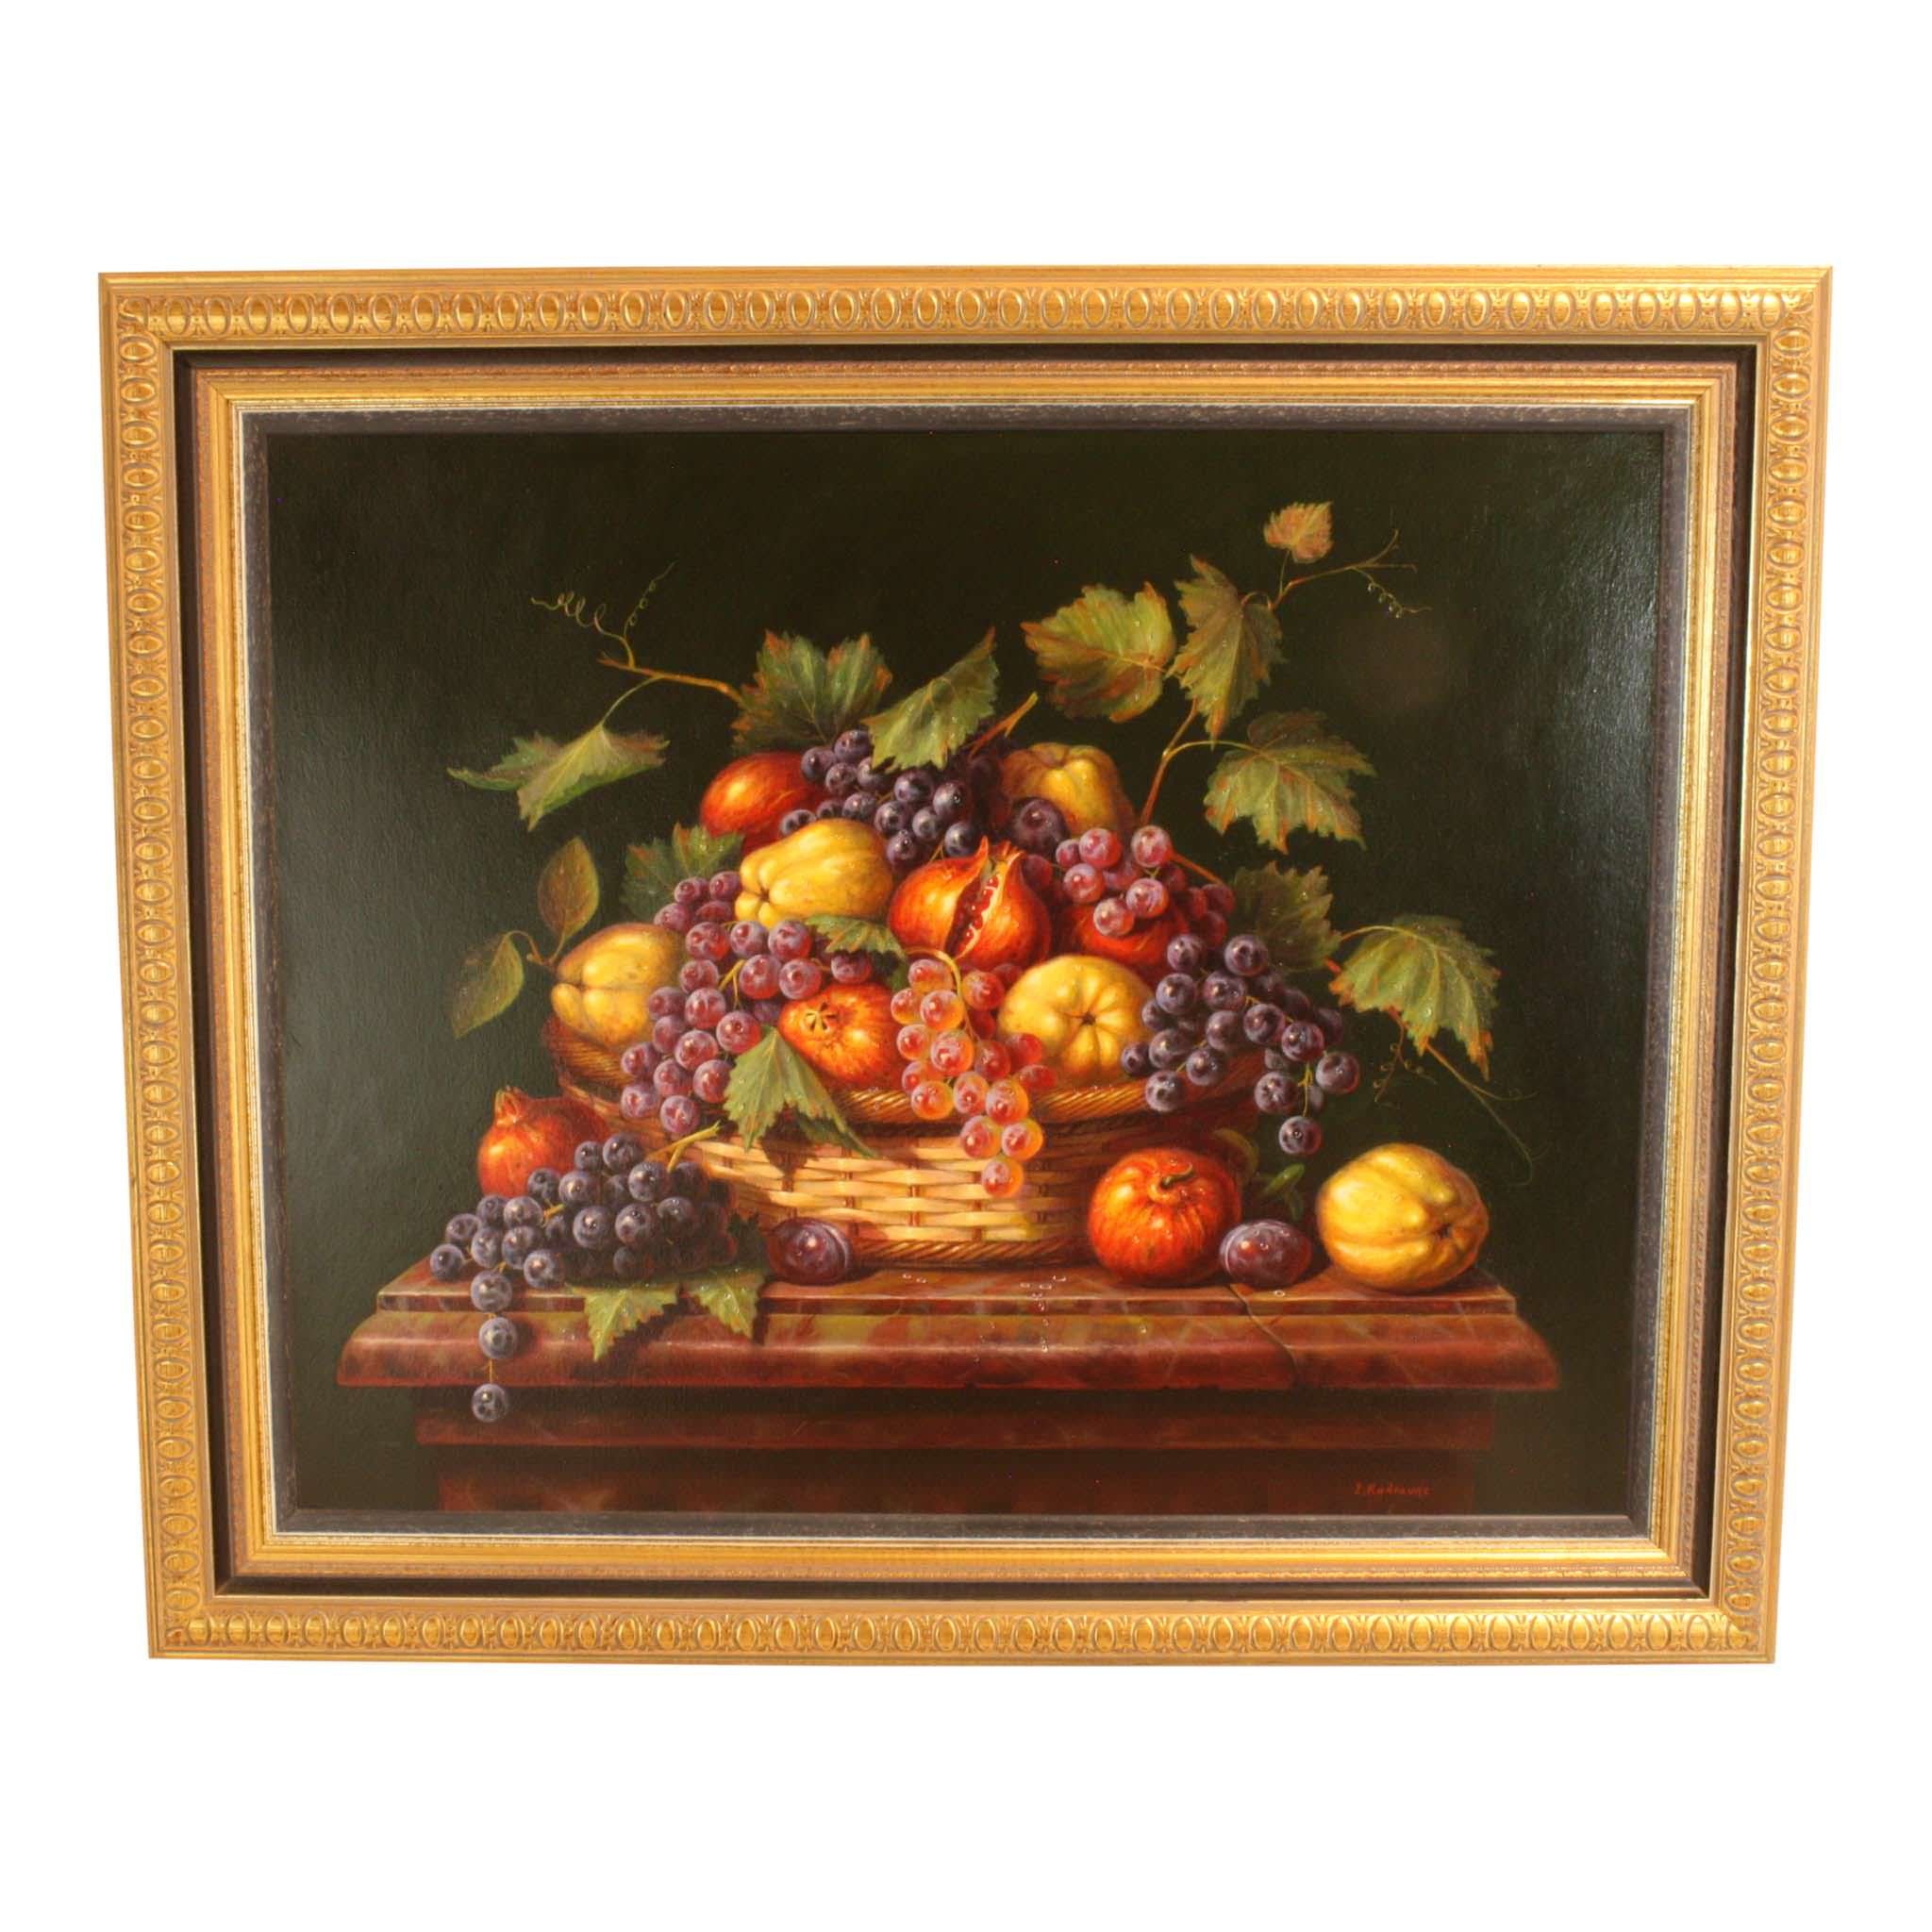 Fruit in a Basket Painting